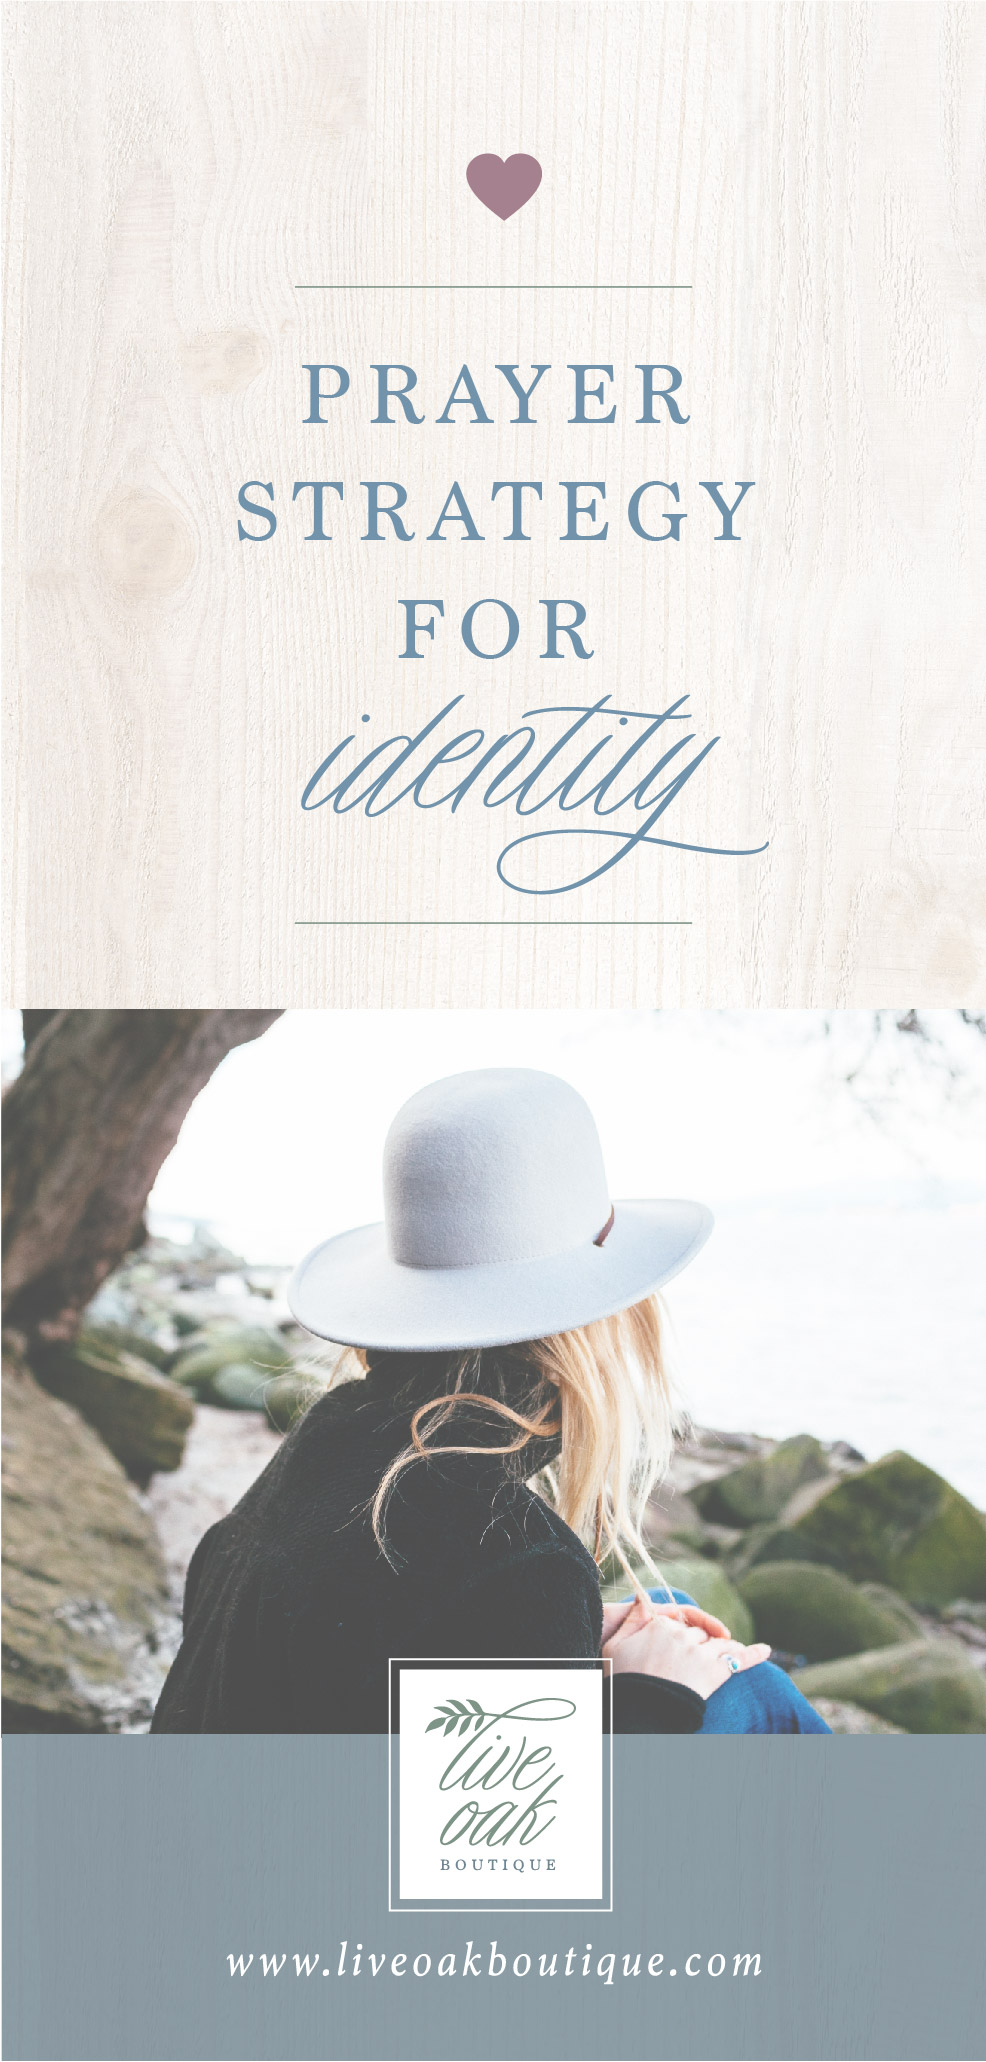 Prayer Strategy for Identity from Live Oak Boutique. www.liveoakboutique.com